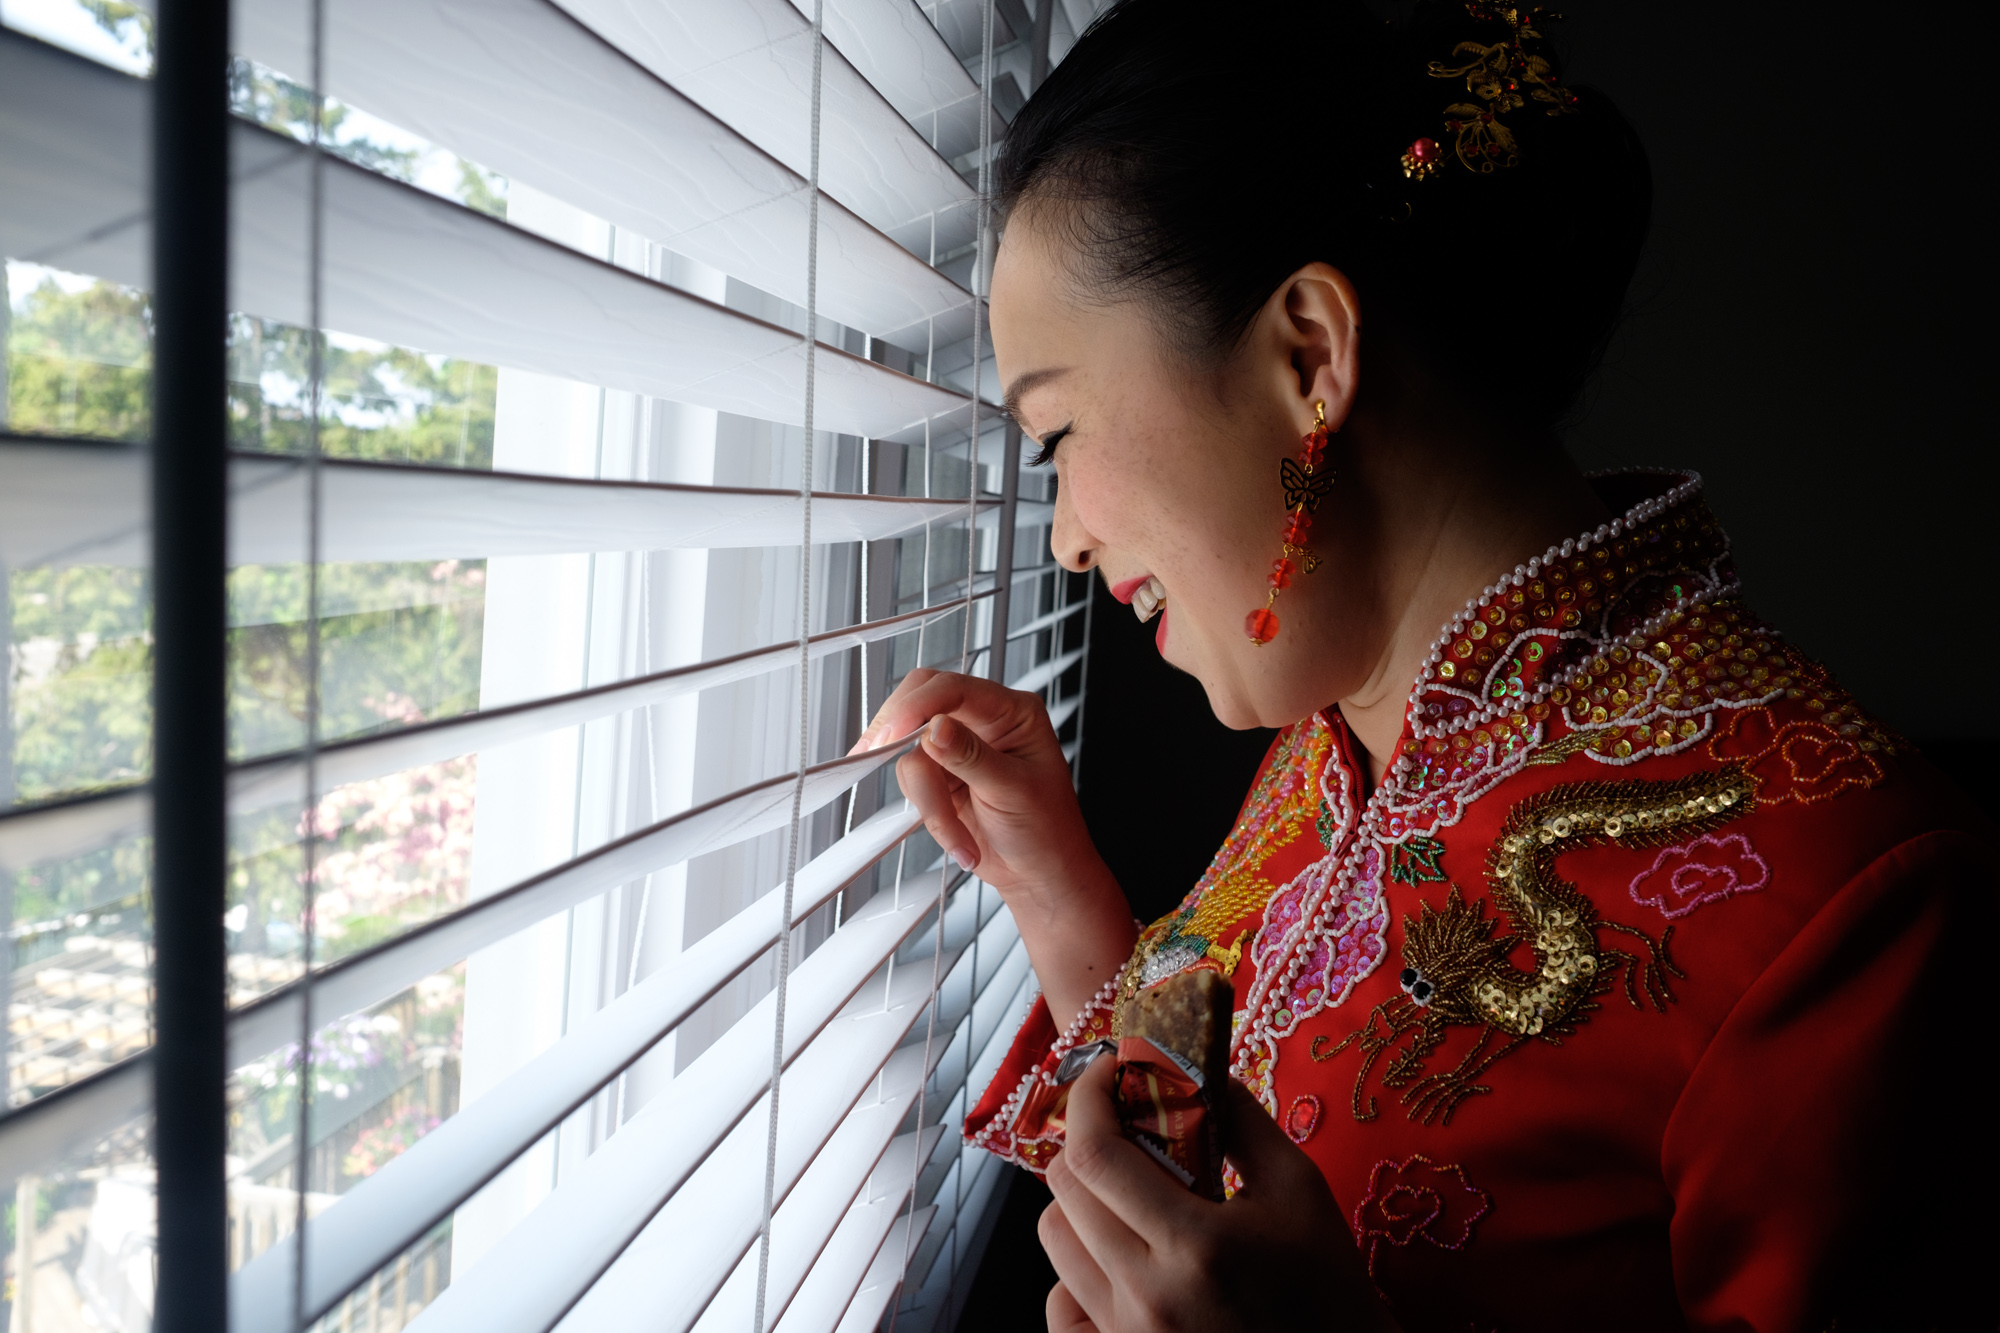 Jing, wearing traditional chinese attire, sneaks a view of guests arriving before her at her wedding ceremony.